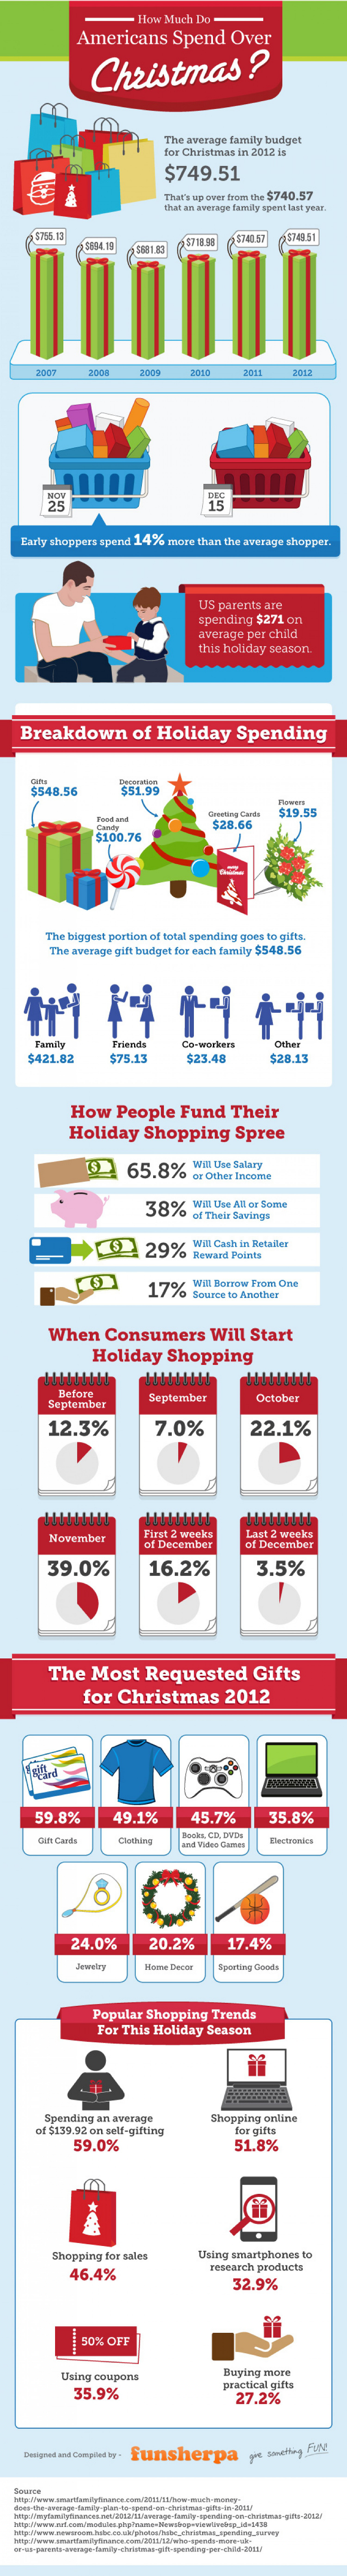 How Much Do Americans Spend